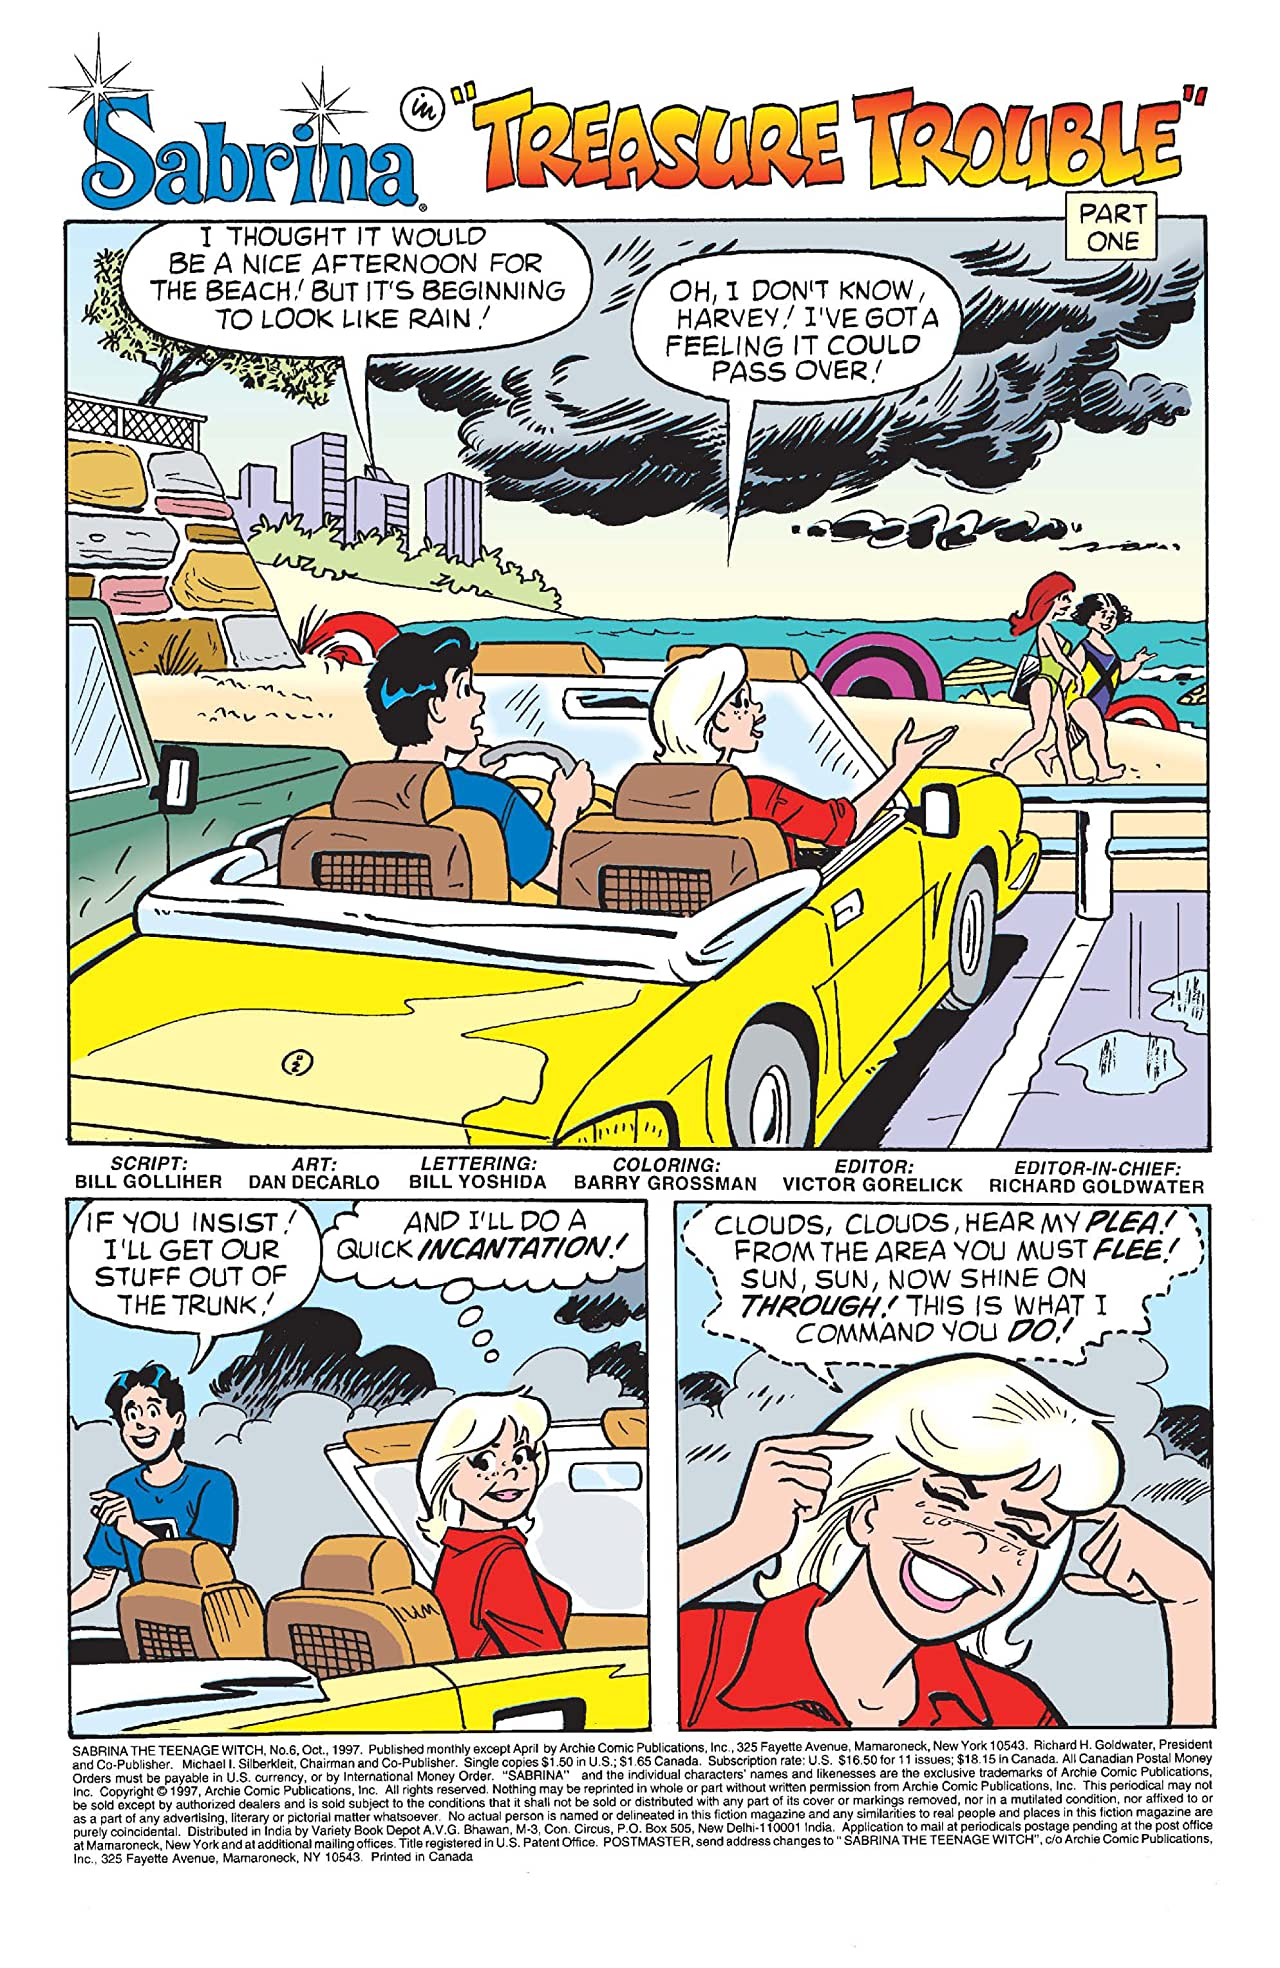 Sabrina the Teenage Witch #6